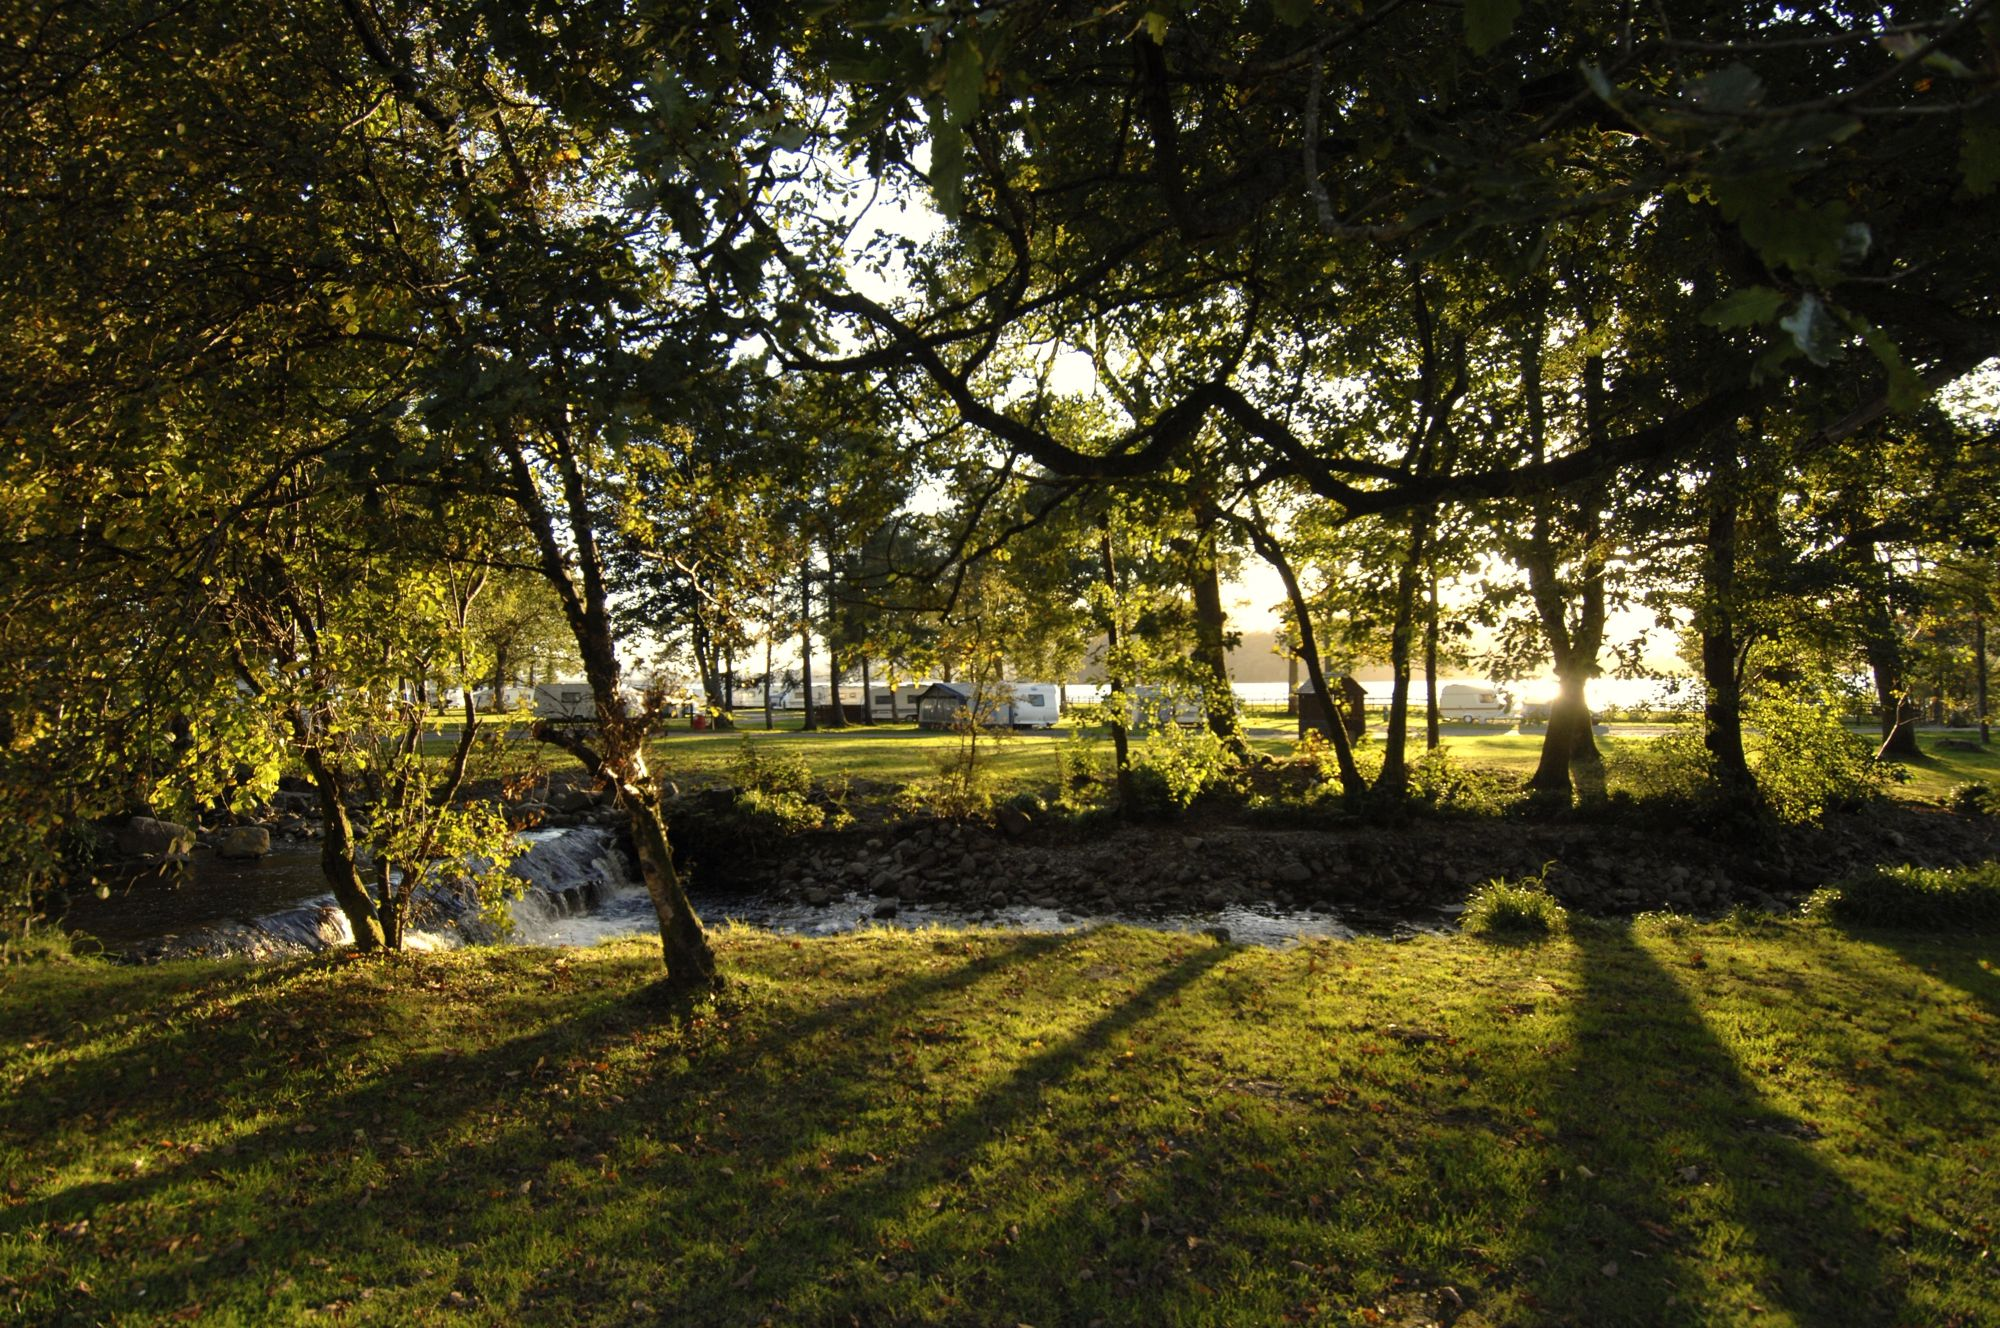 Located right on the shores of Loch Lomond, this welcoming, harmonious campsite comes with one hell of a view.